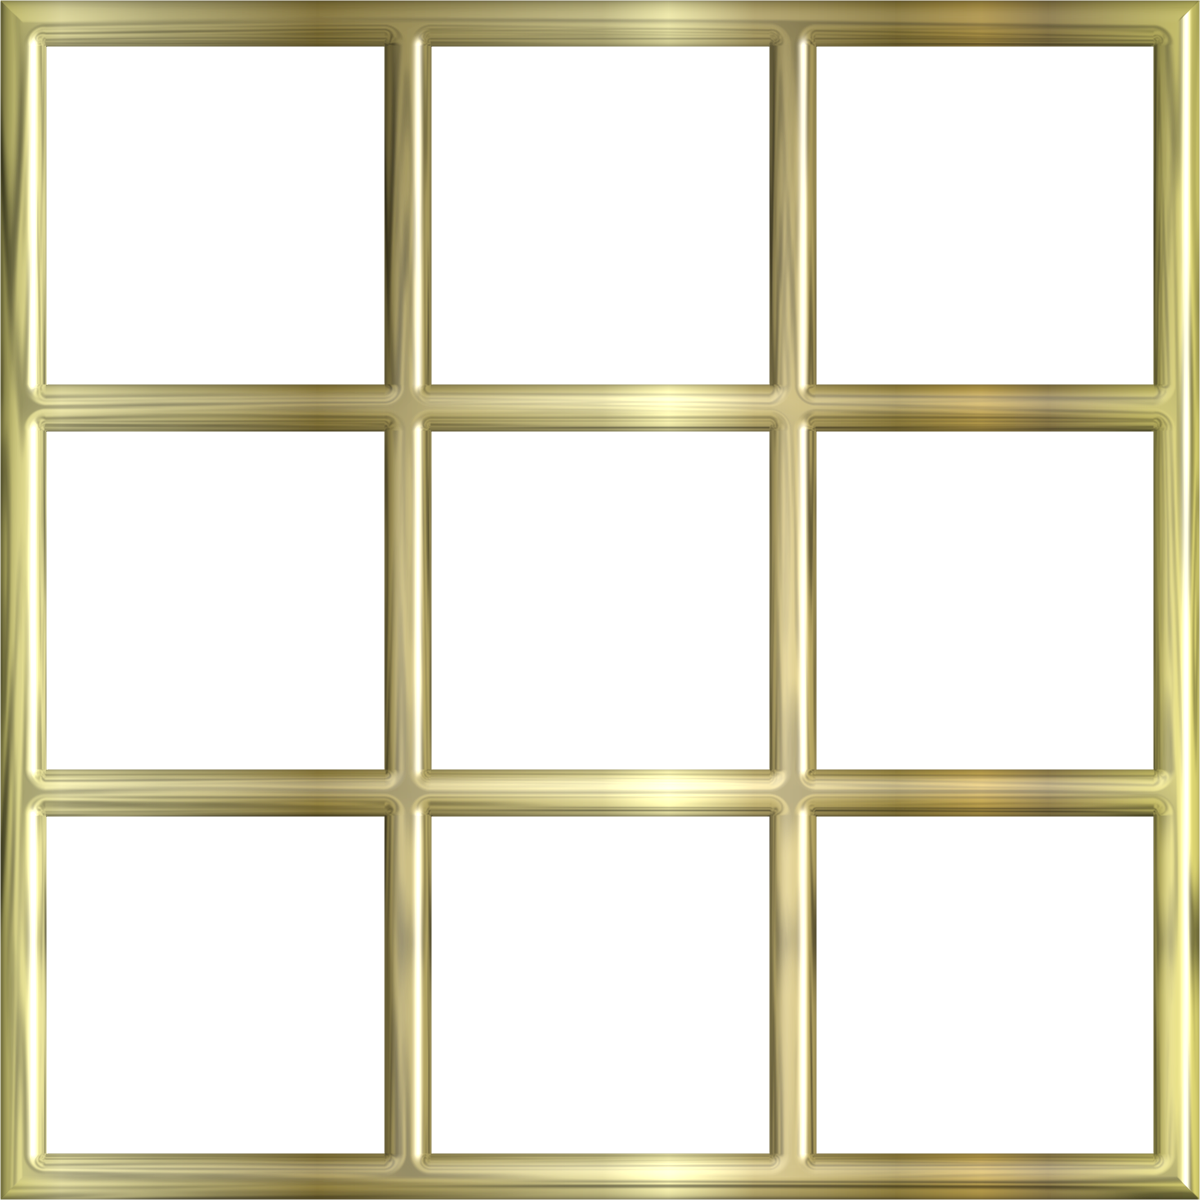 Window clipart rectangle Border Frame at Images Clker